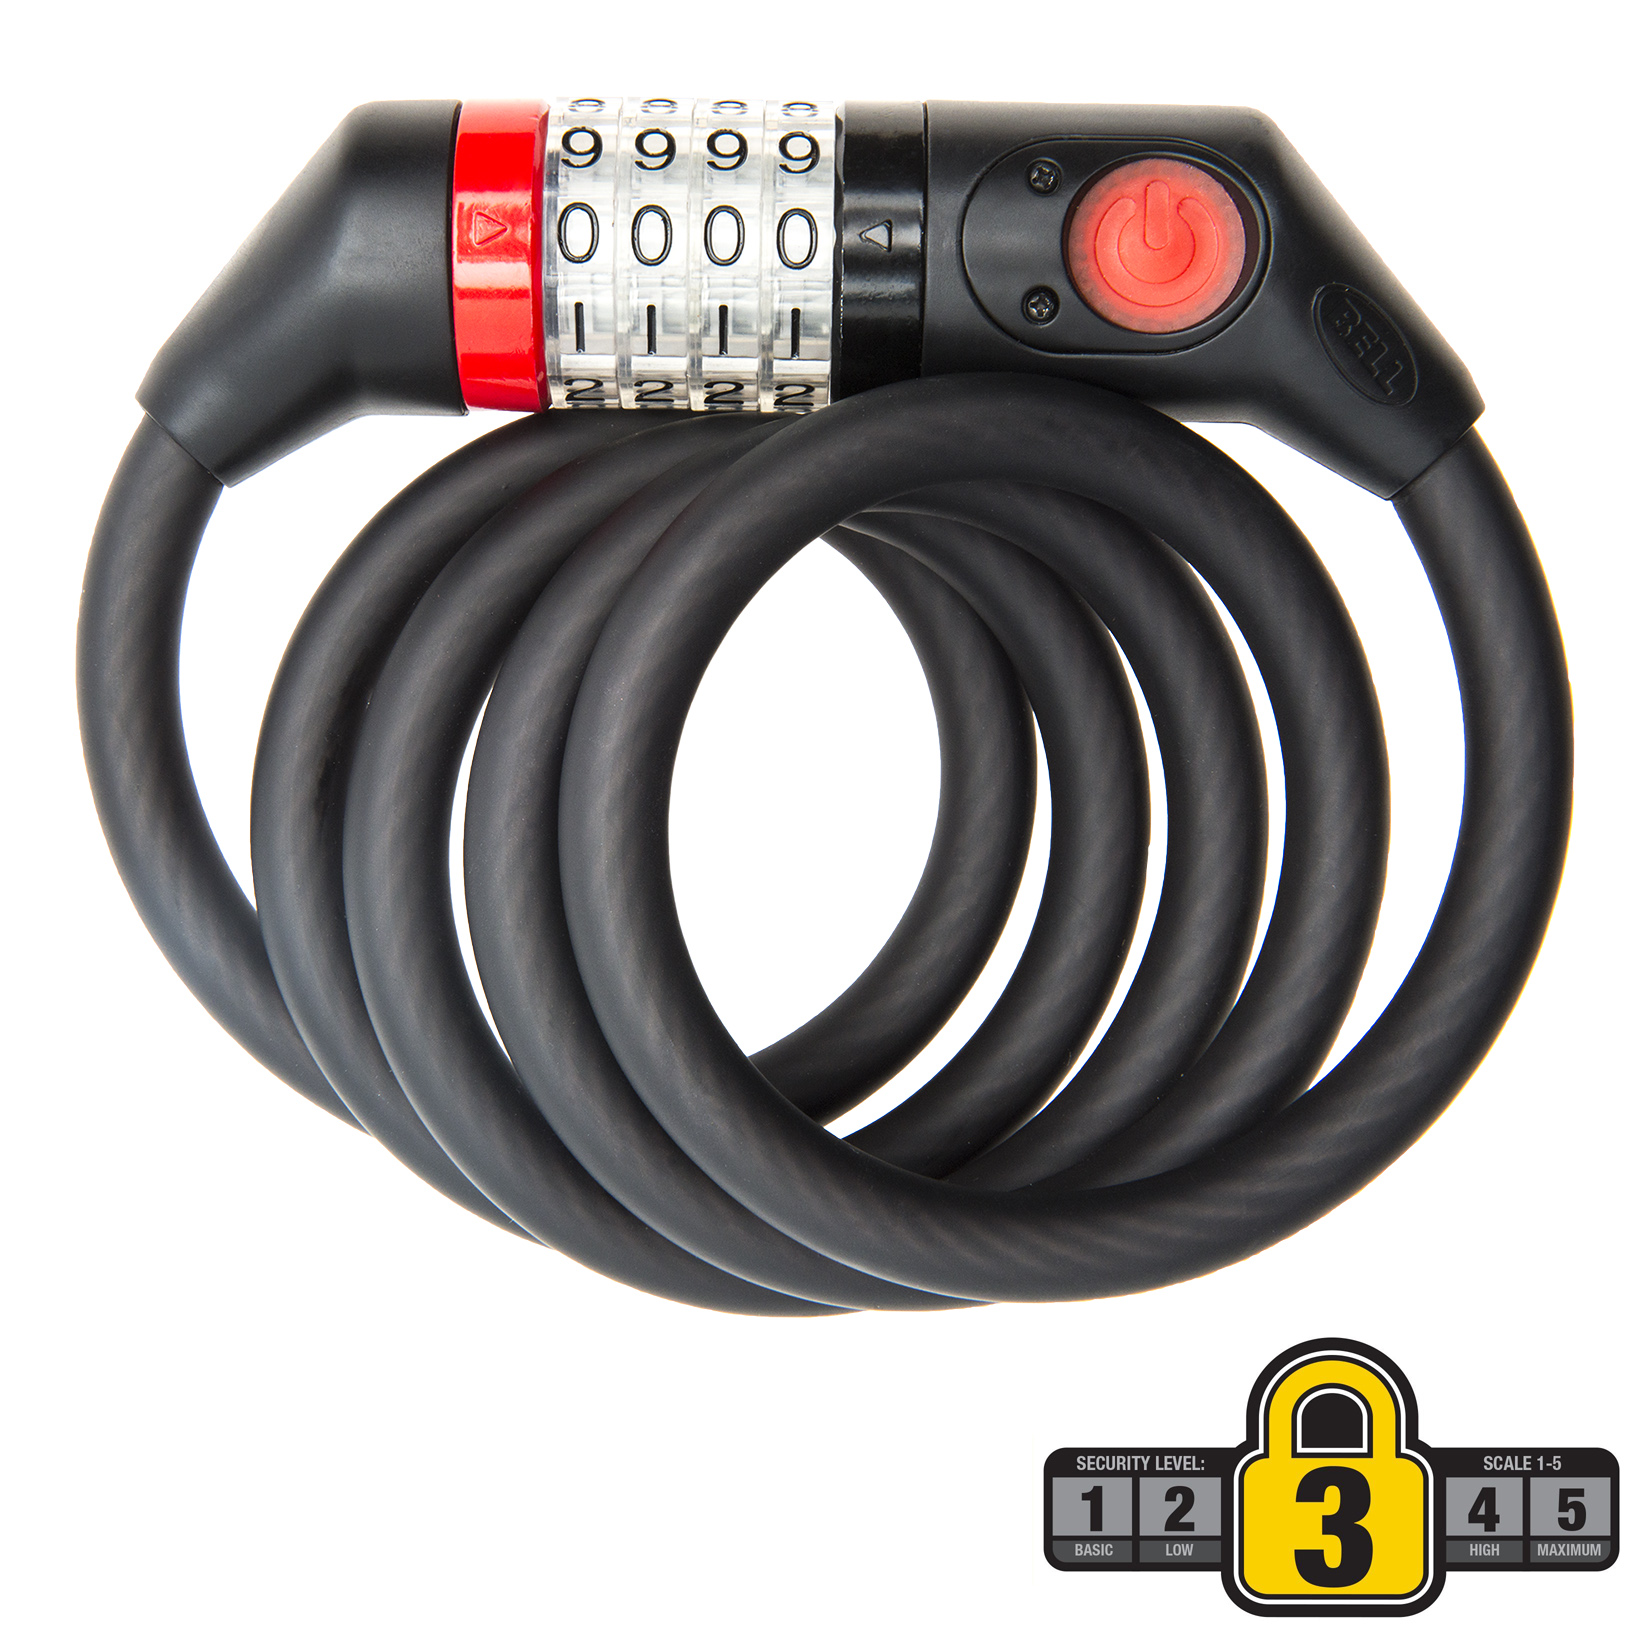 Bell Sports WATCHDOG 650 Lighted 5' x 12mm Cable Bicycle Lock, Black